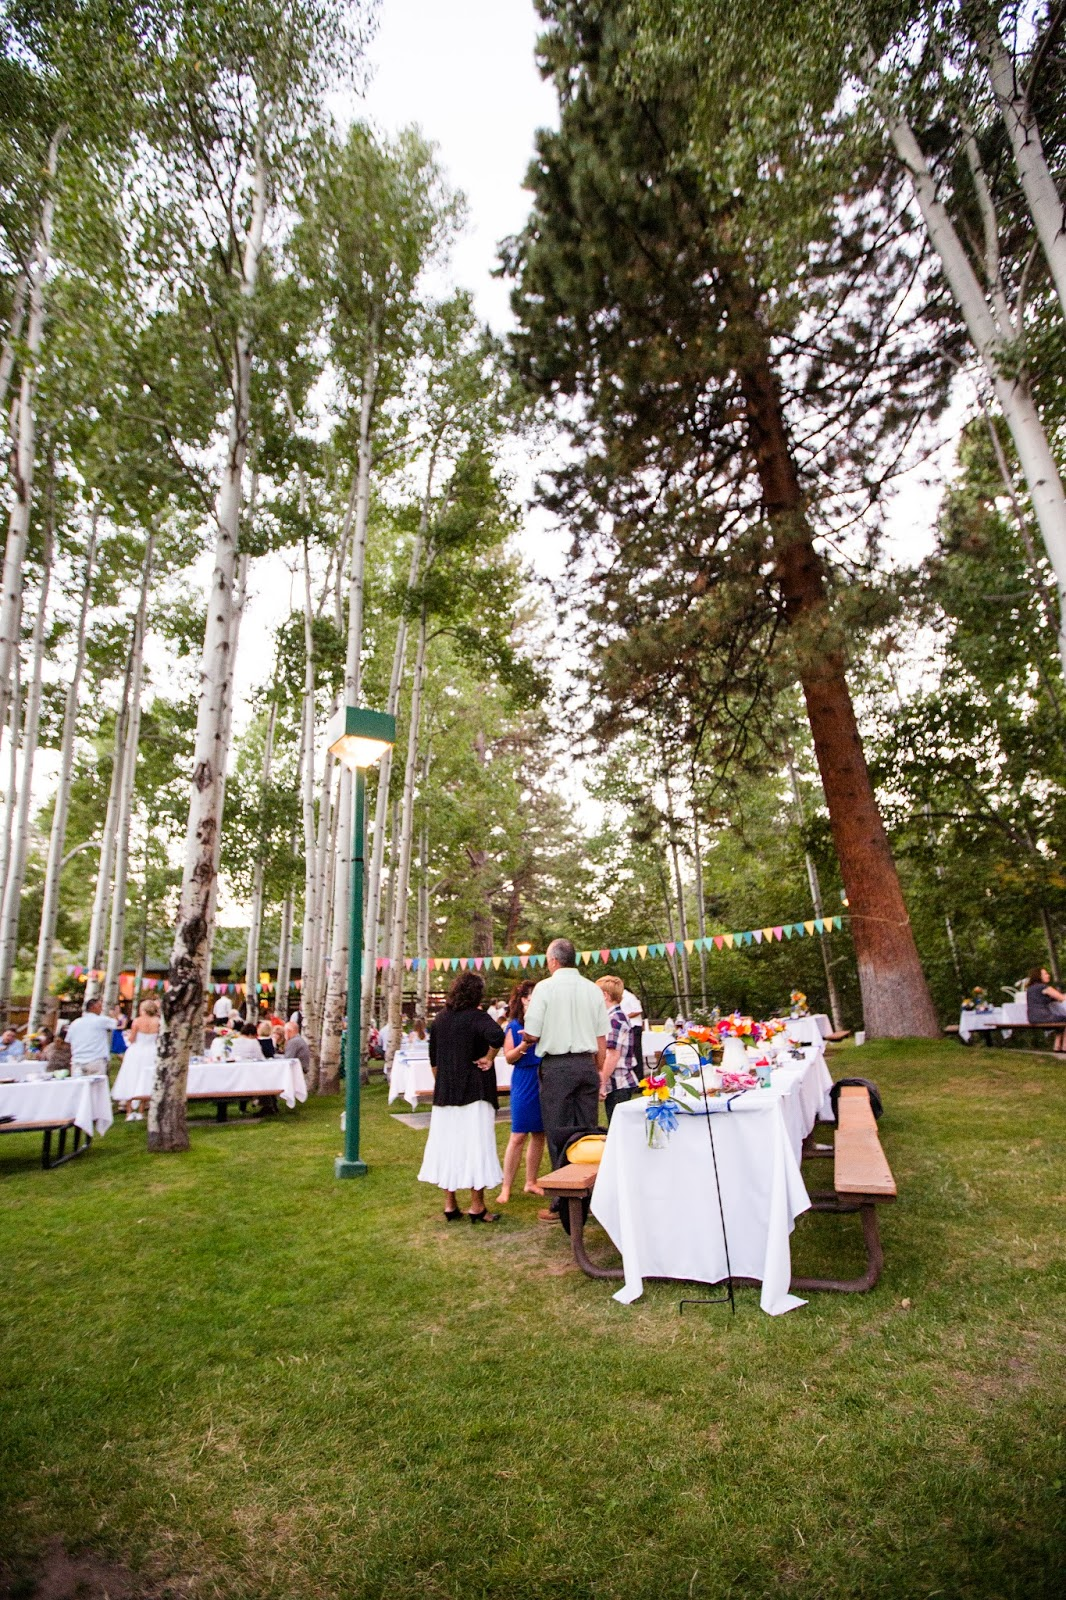 Aspen Grove wedding // Huong Forrest Photography // Take the Cake Event Planning